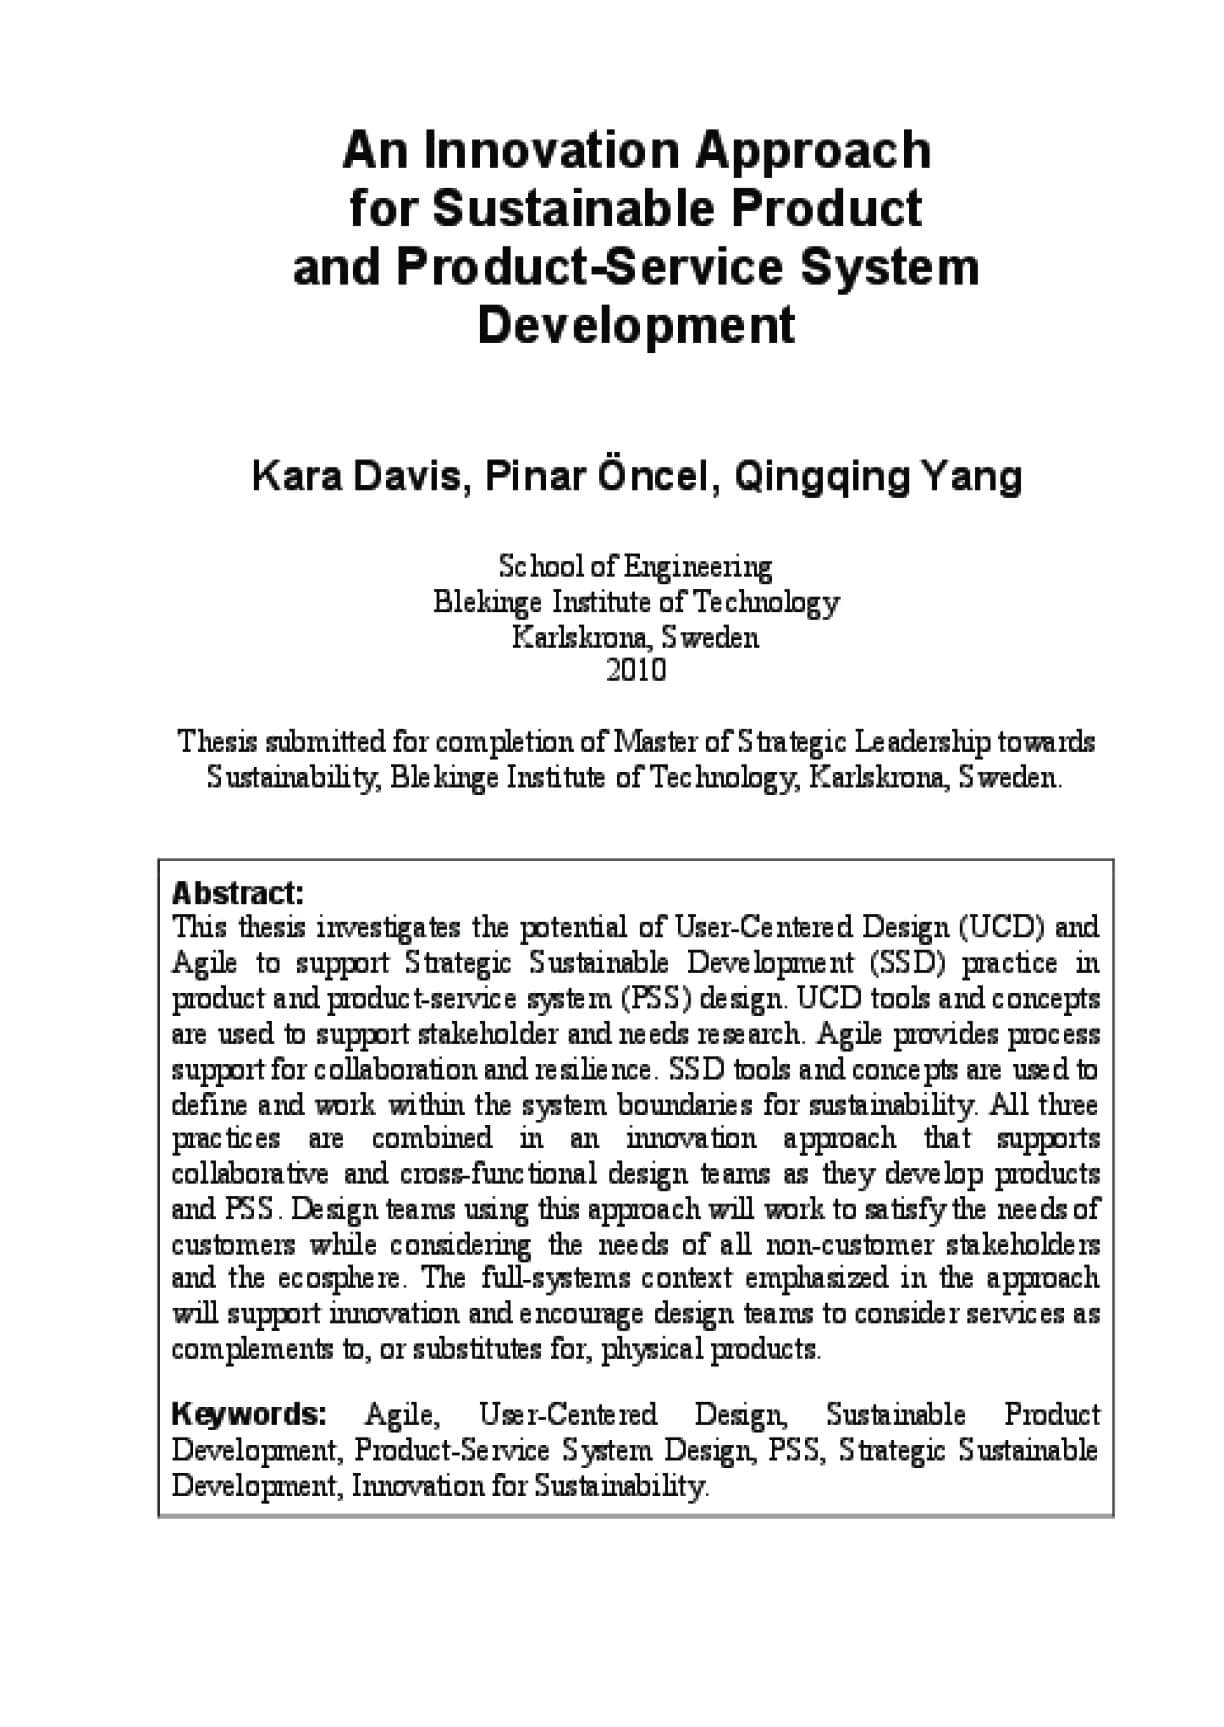 An Innovation Approach for Sustainable Product and Product-Service System Development